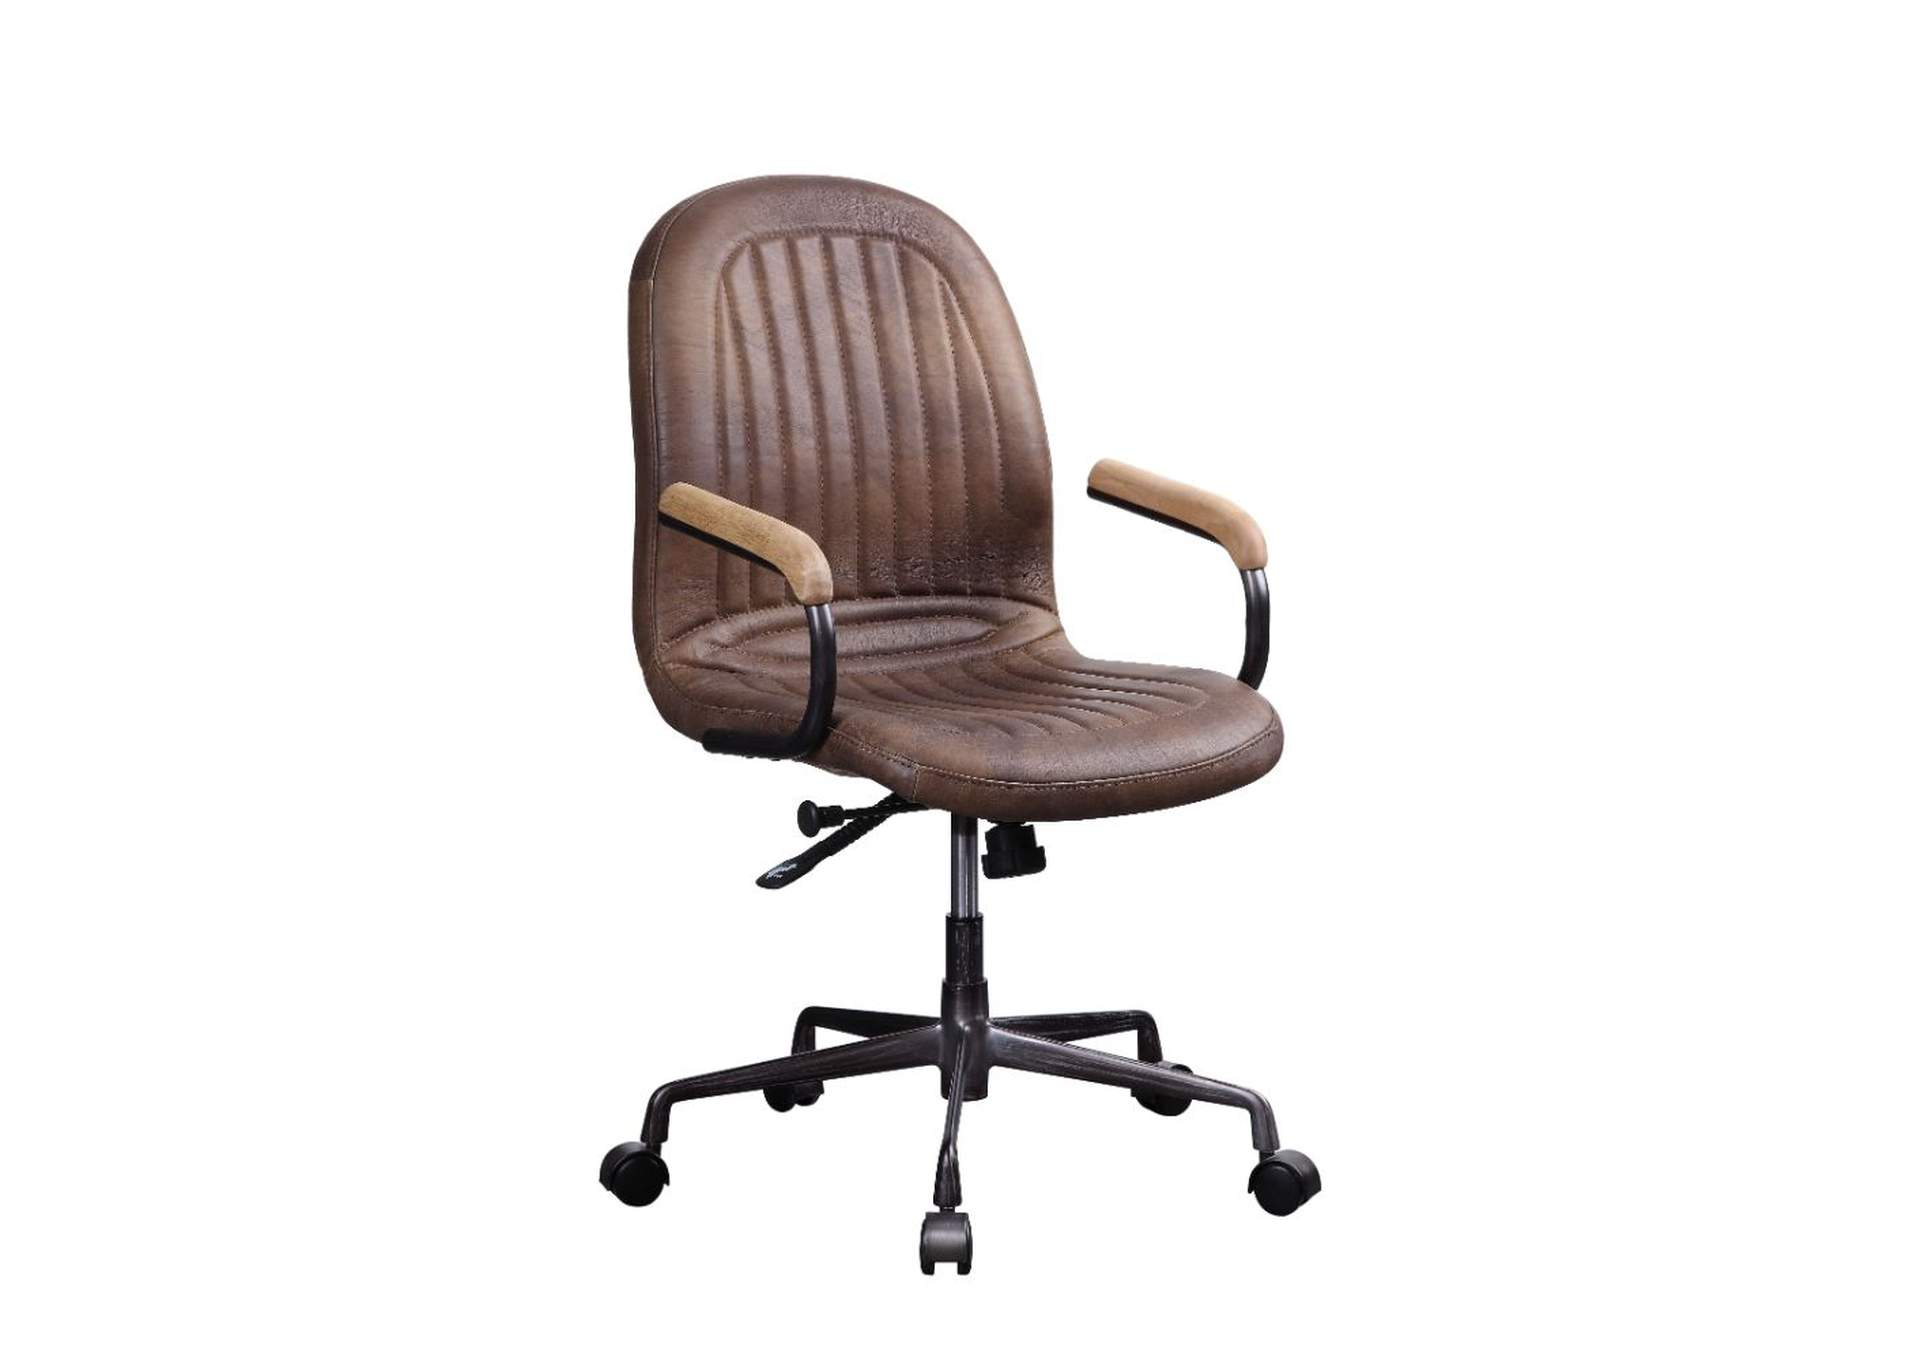 Acis Vintage Chocolate Top Grain Leather Executive Office Chair,Acme